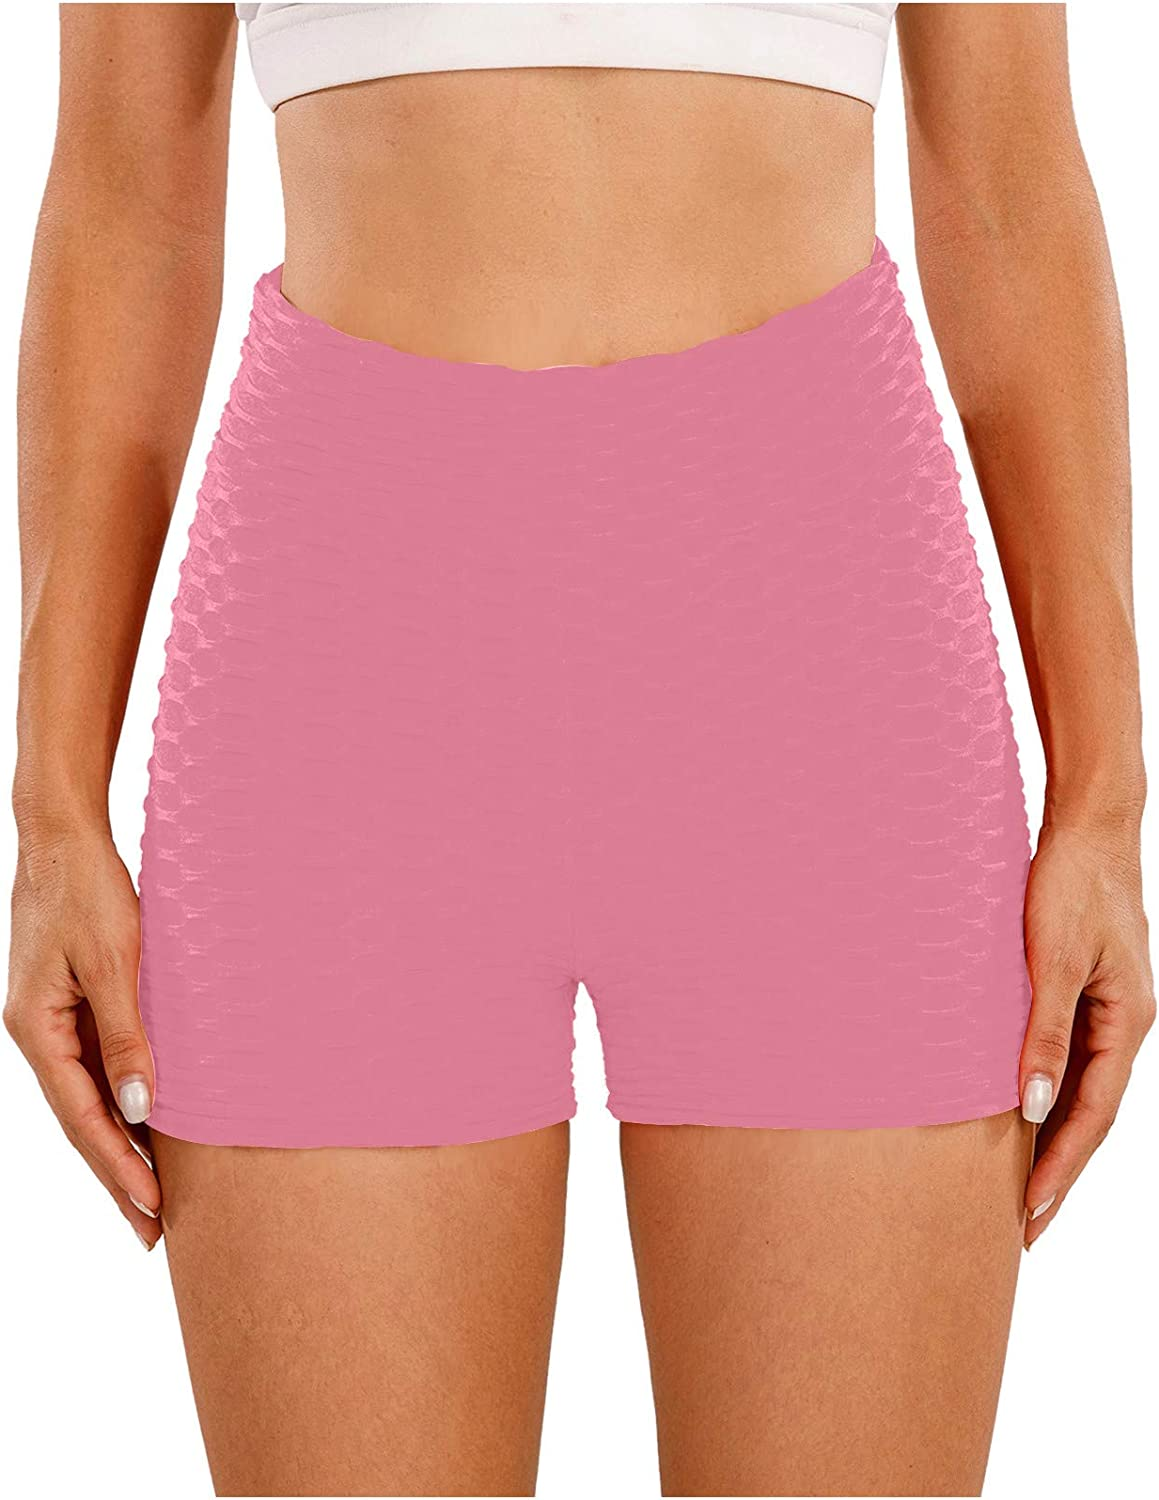 Manufacturer direct delivery Gwewei4df 2PC Yoga Shorts TIK Pants OFFicial mail order Mixing Color Tok